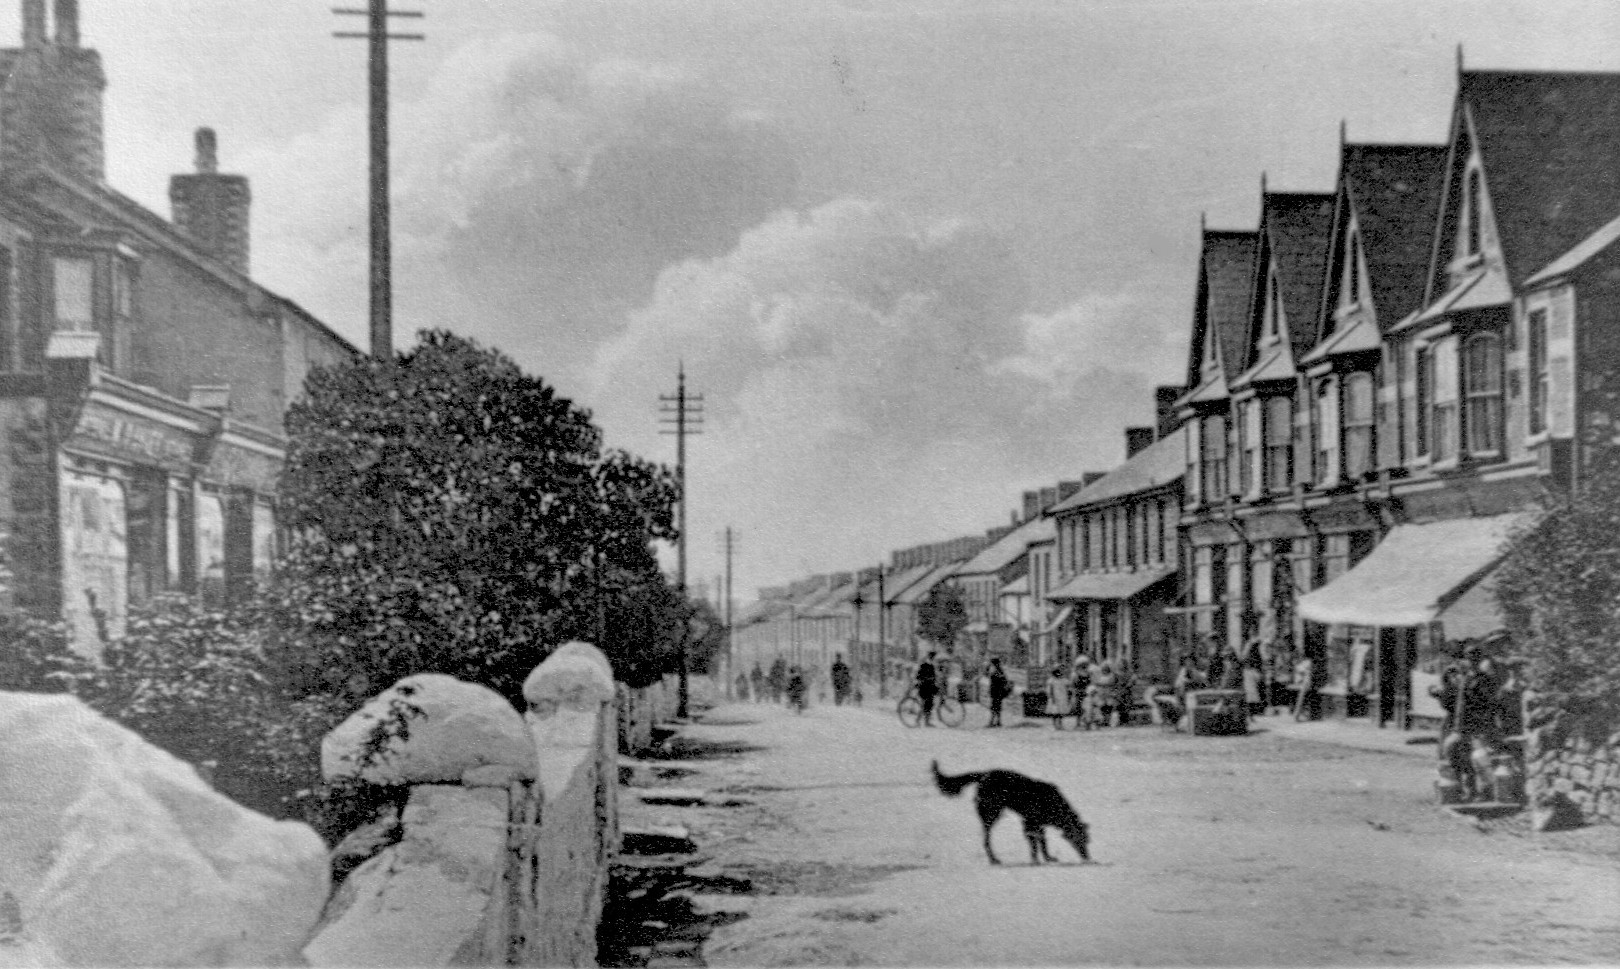 Kenfig Hill (dog in street) c1900